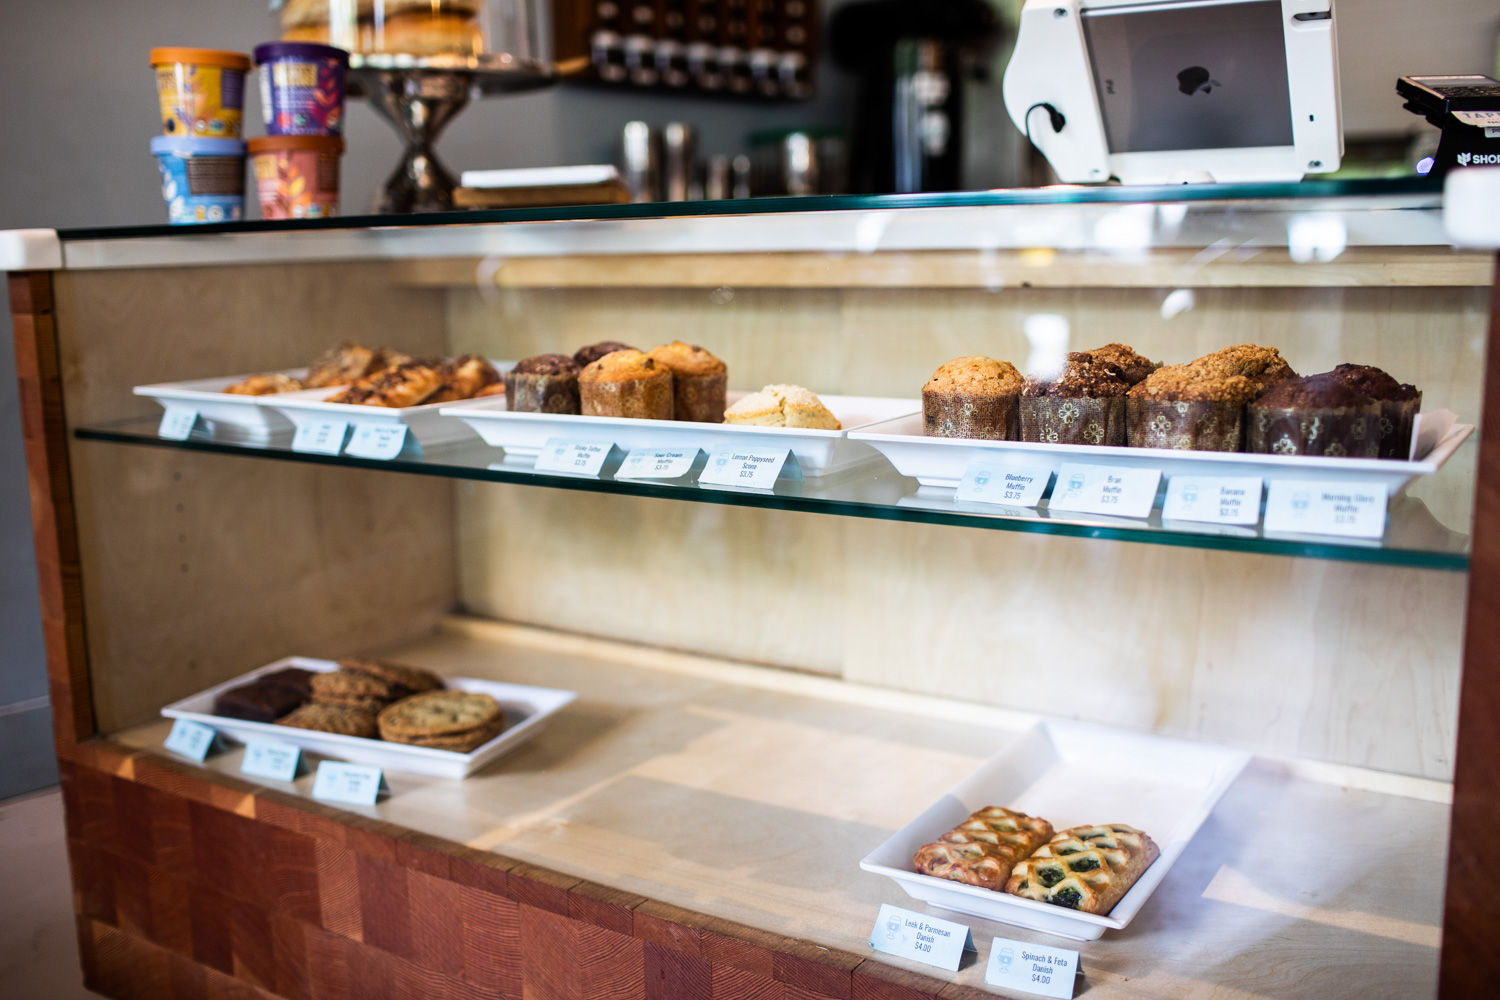 A selection of fresh pastries, cookies, and muffins are available.